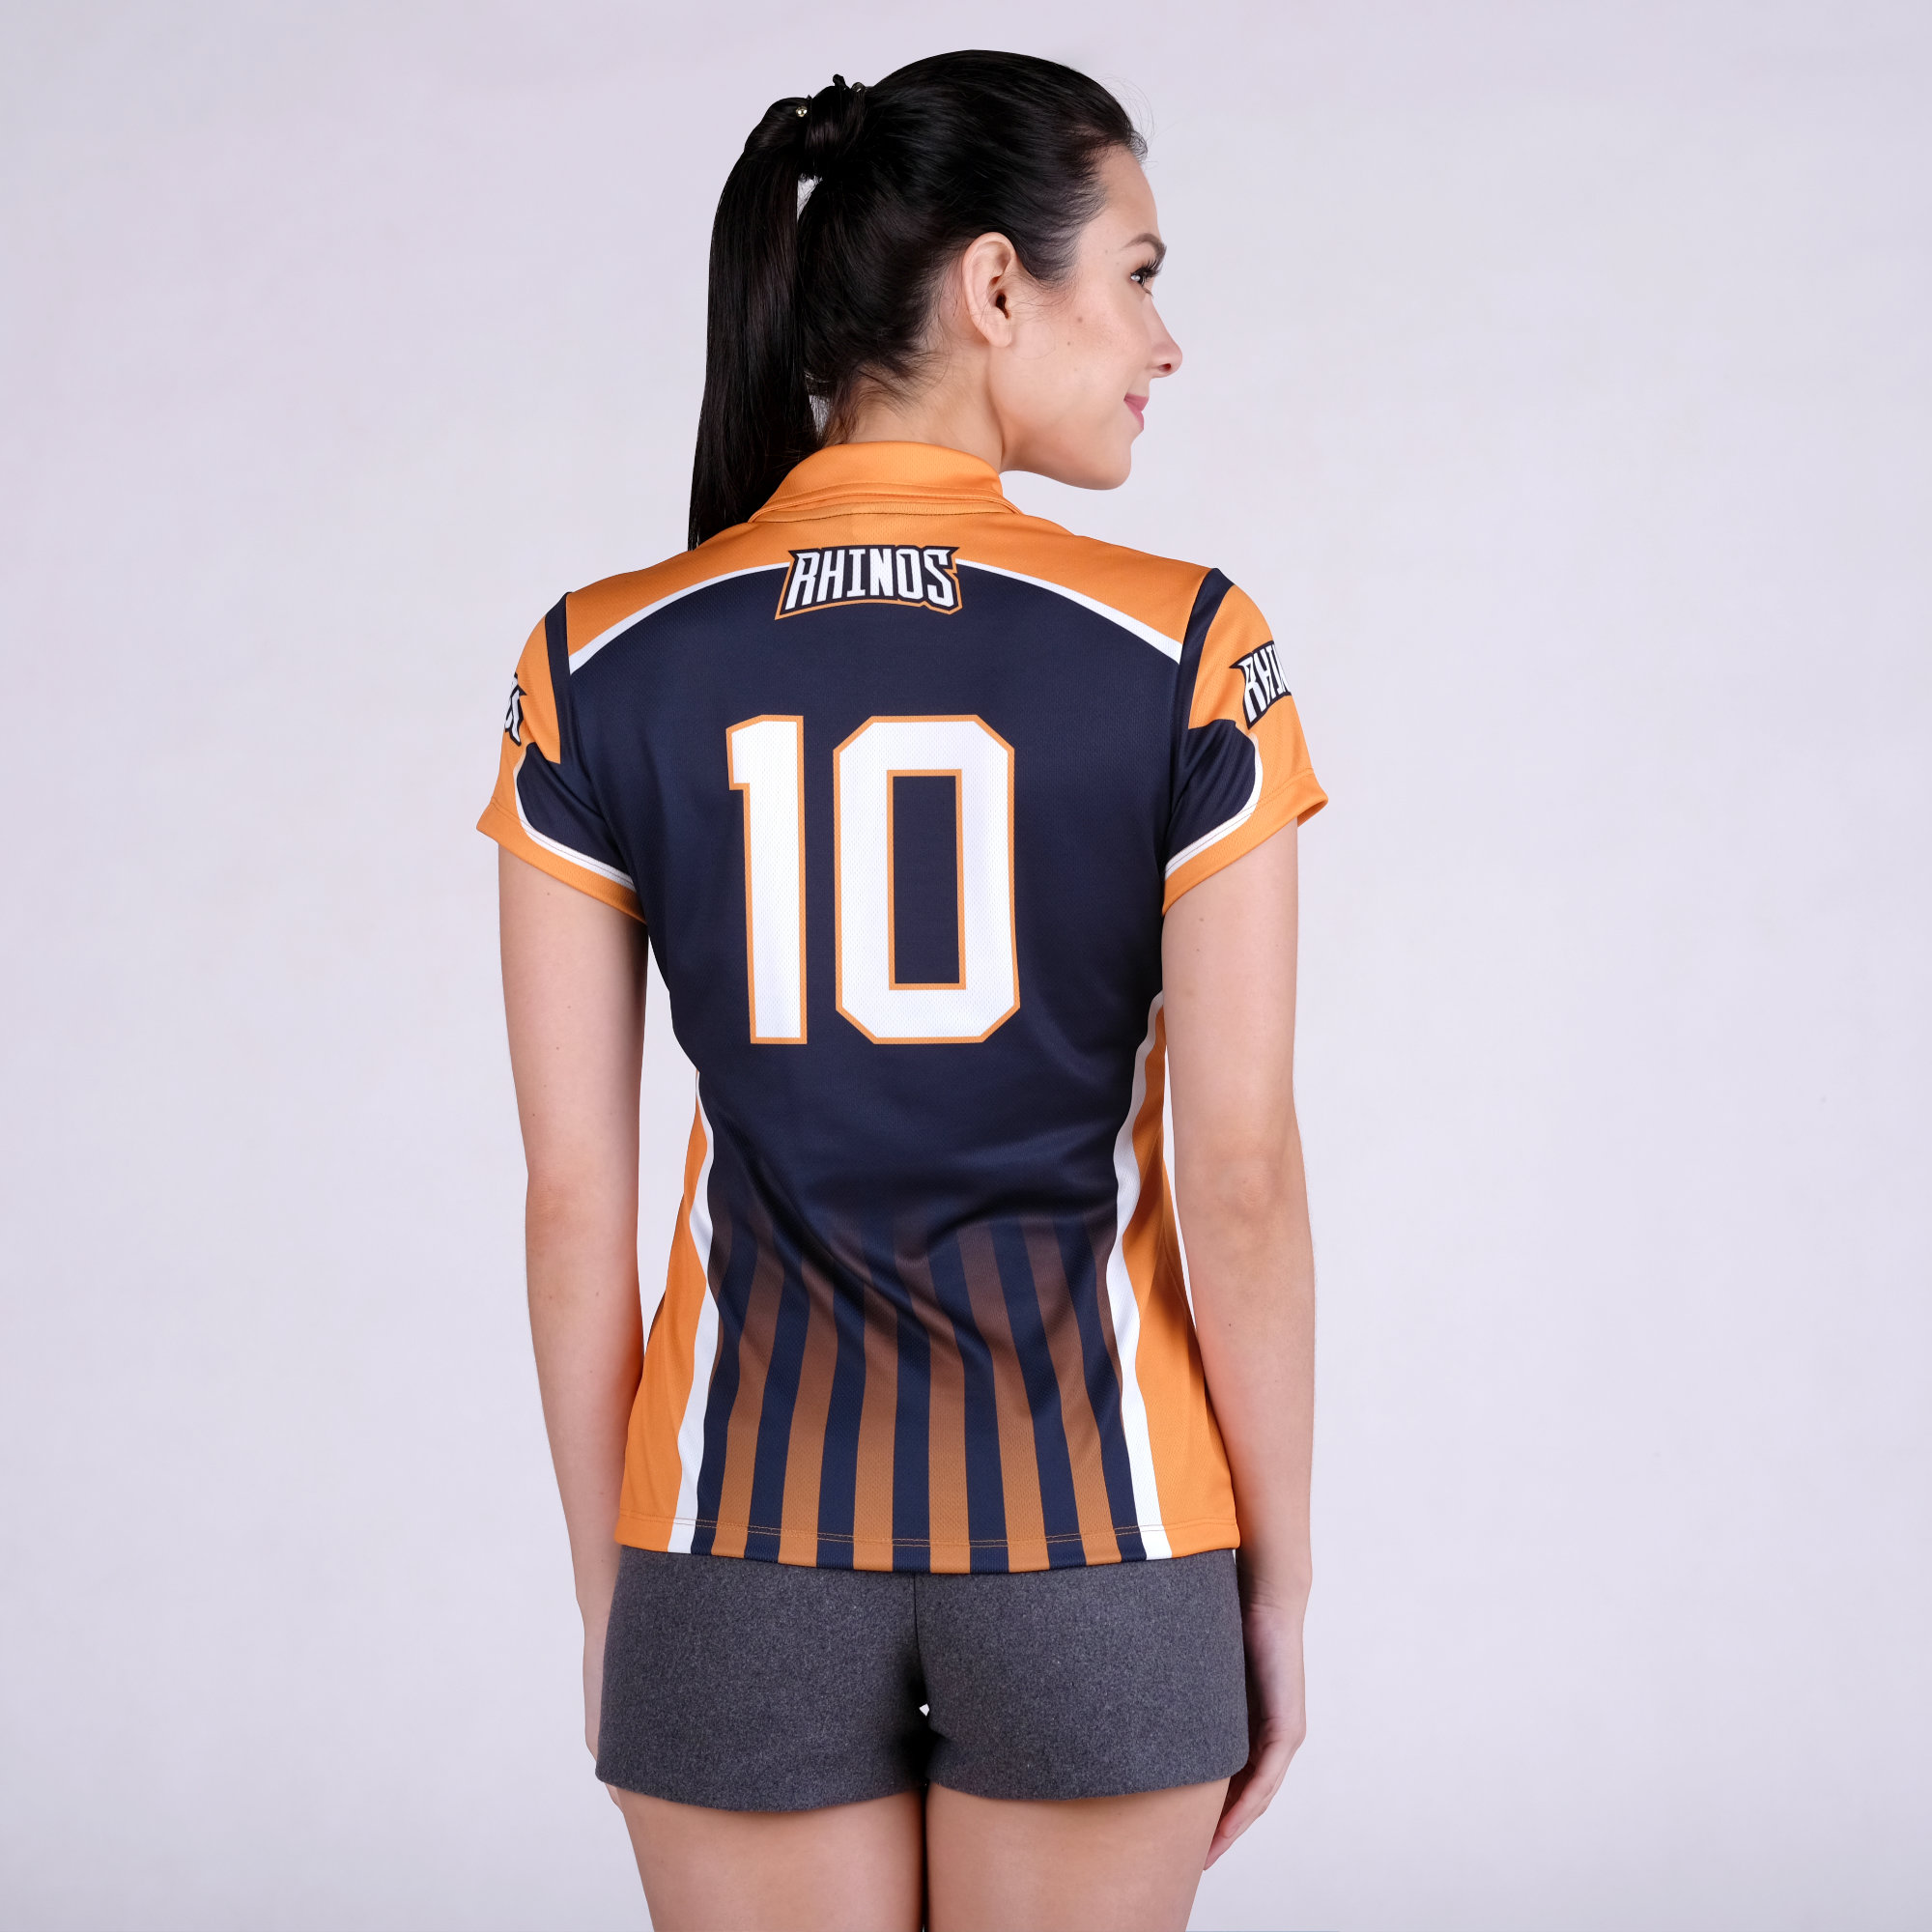 Sublimated Women's Sports Tee Collared Shirt Full Sublimation Shirt